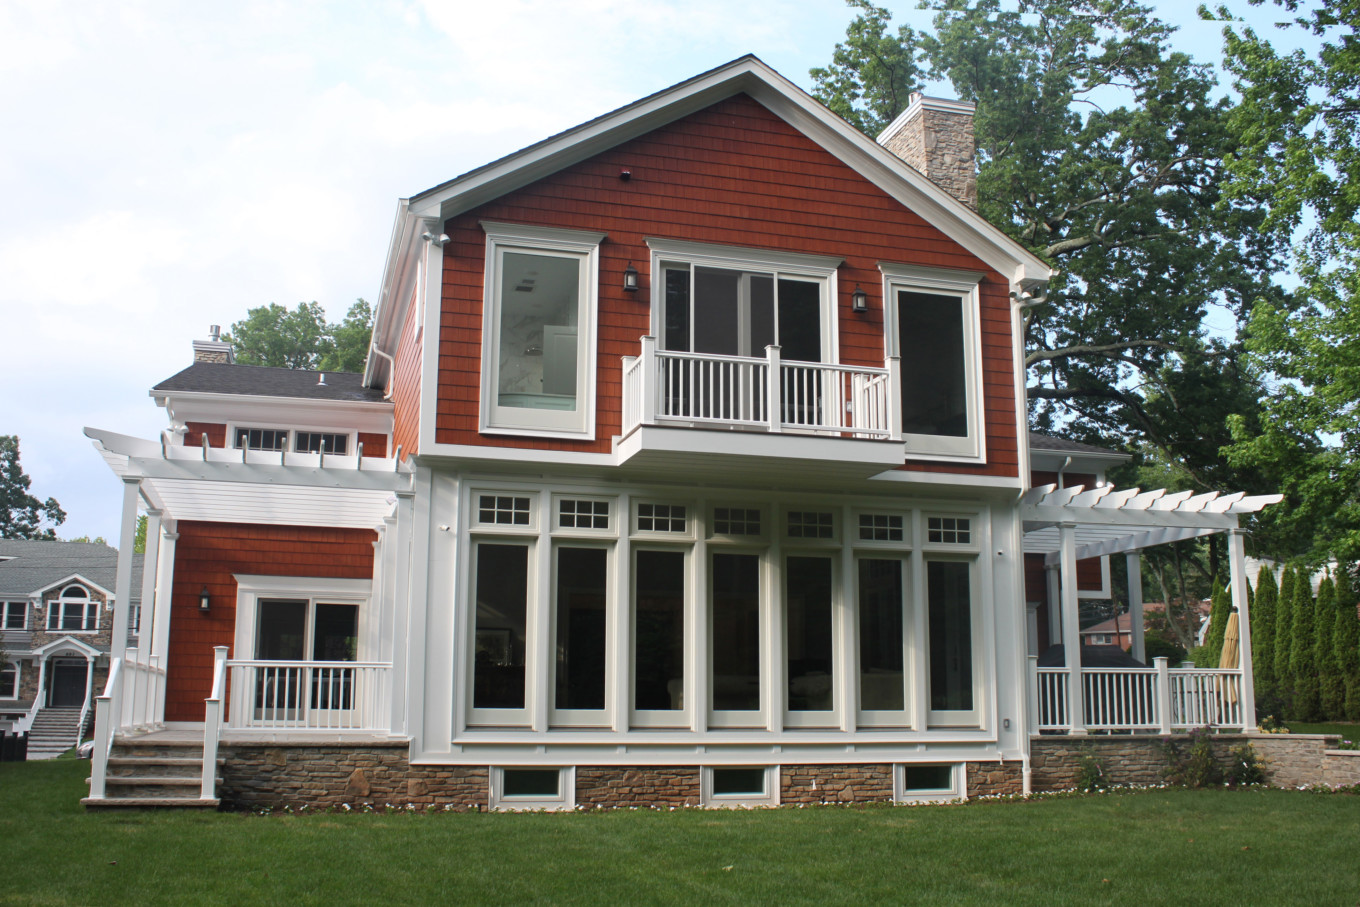 White Trim On Red House